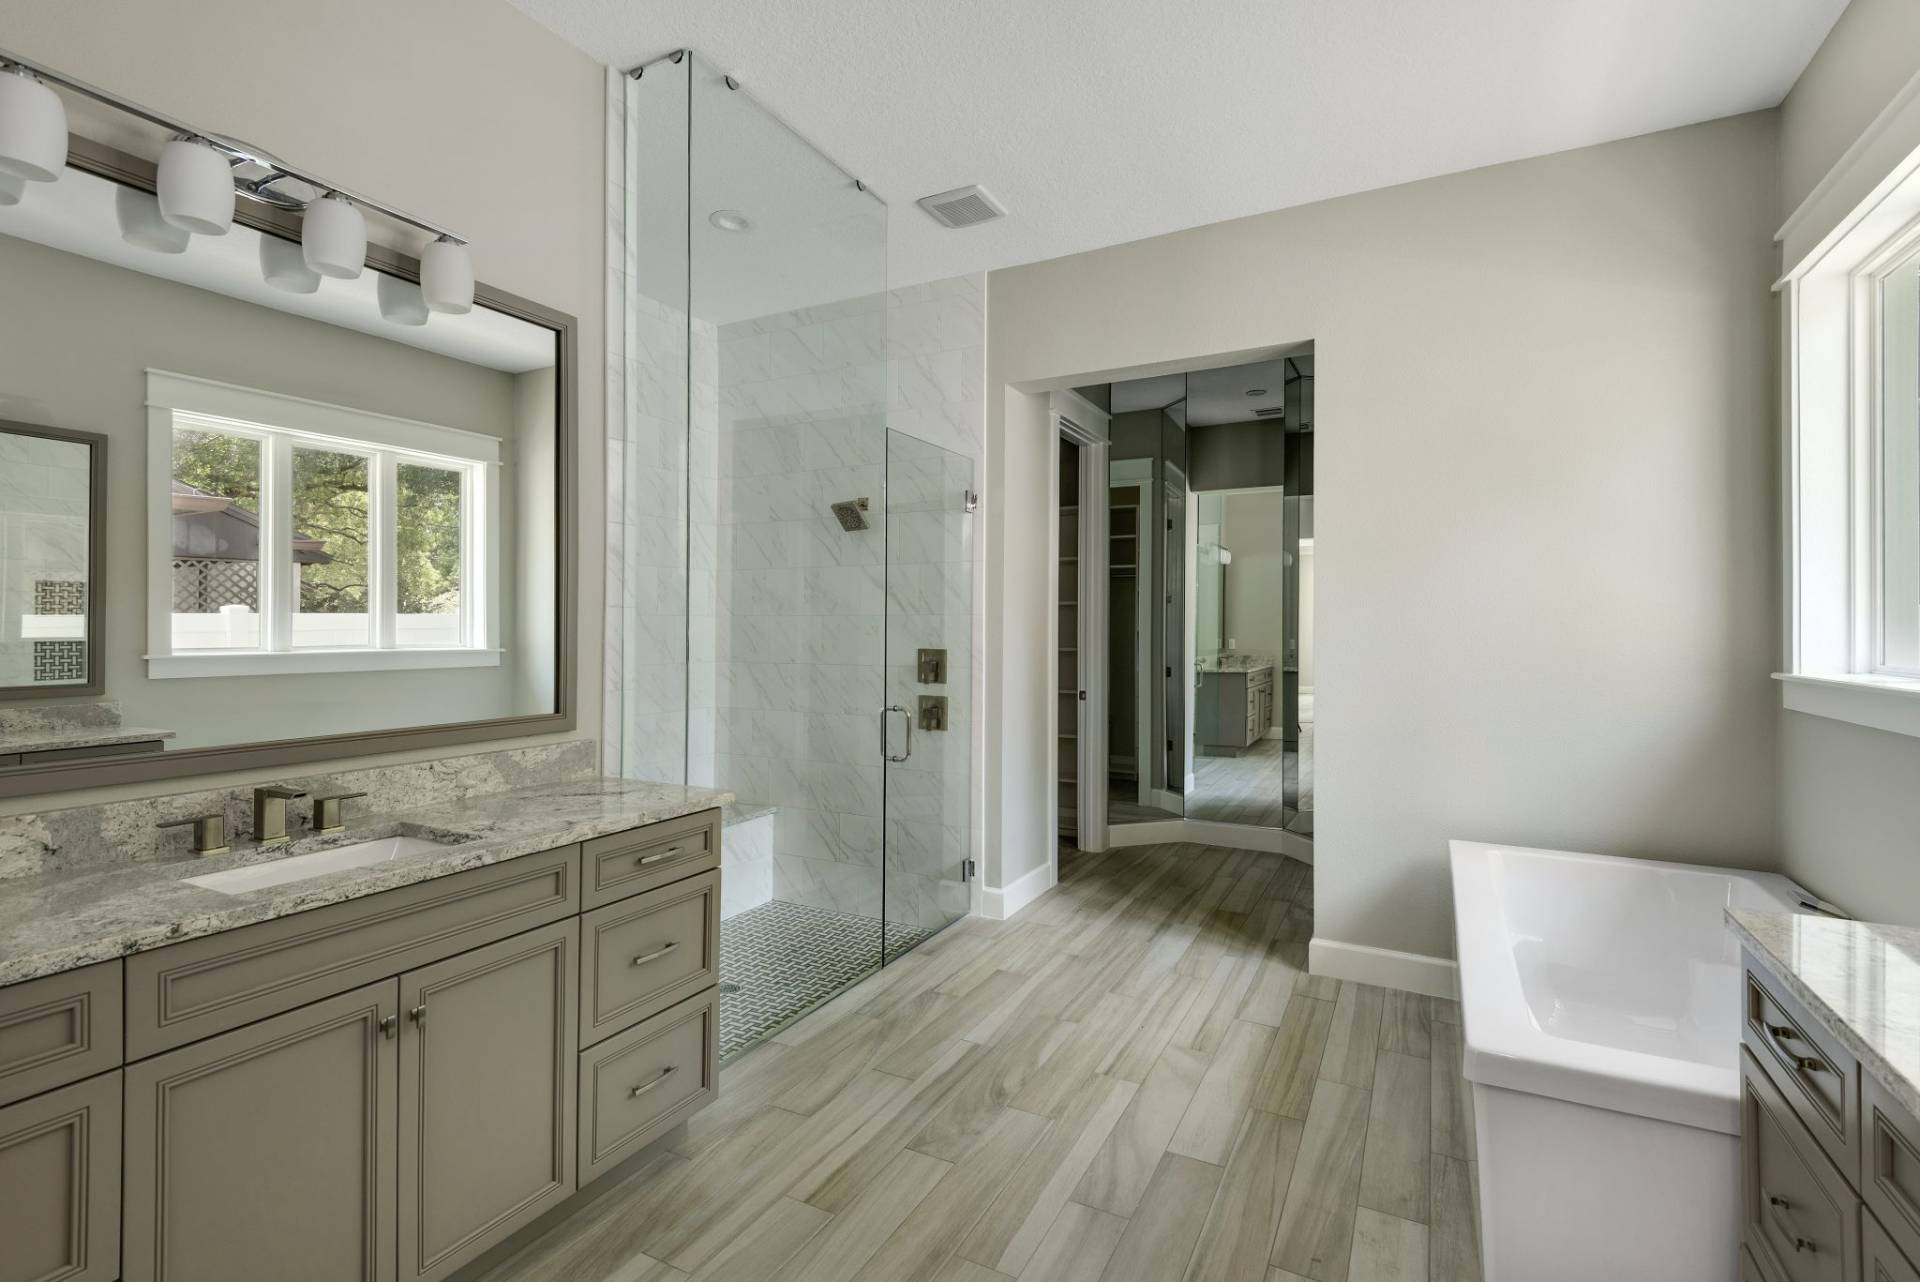 bathroom designed and built by New Legacy Homes, the best South Tampa homebuilder